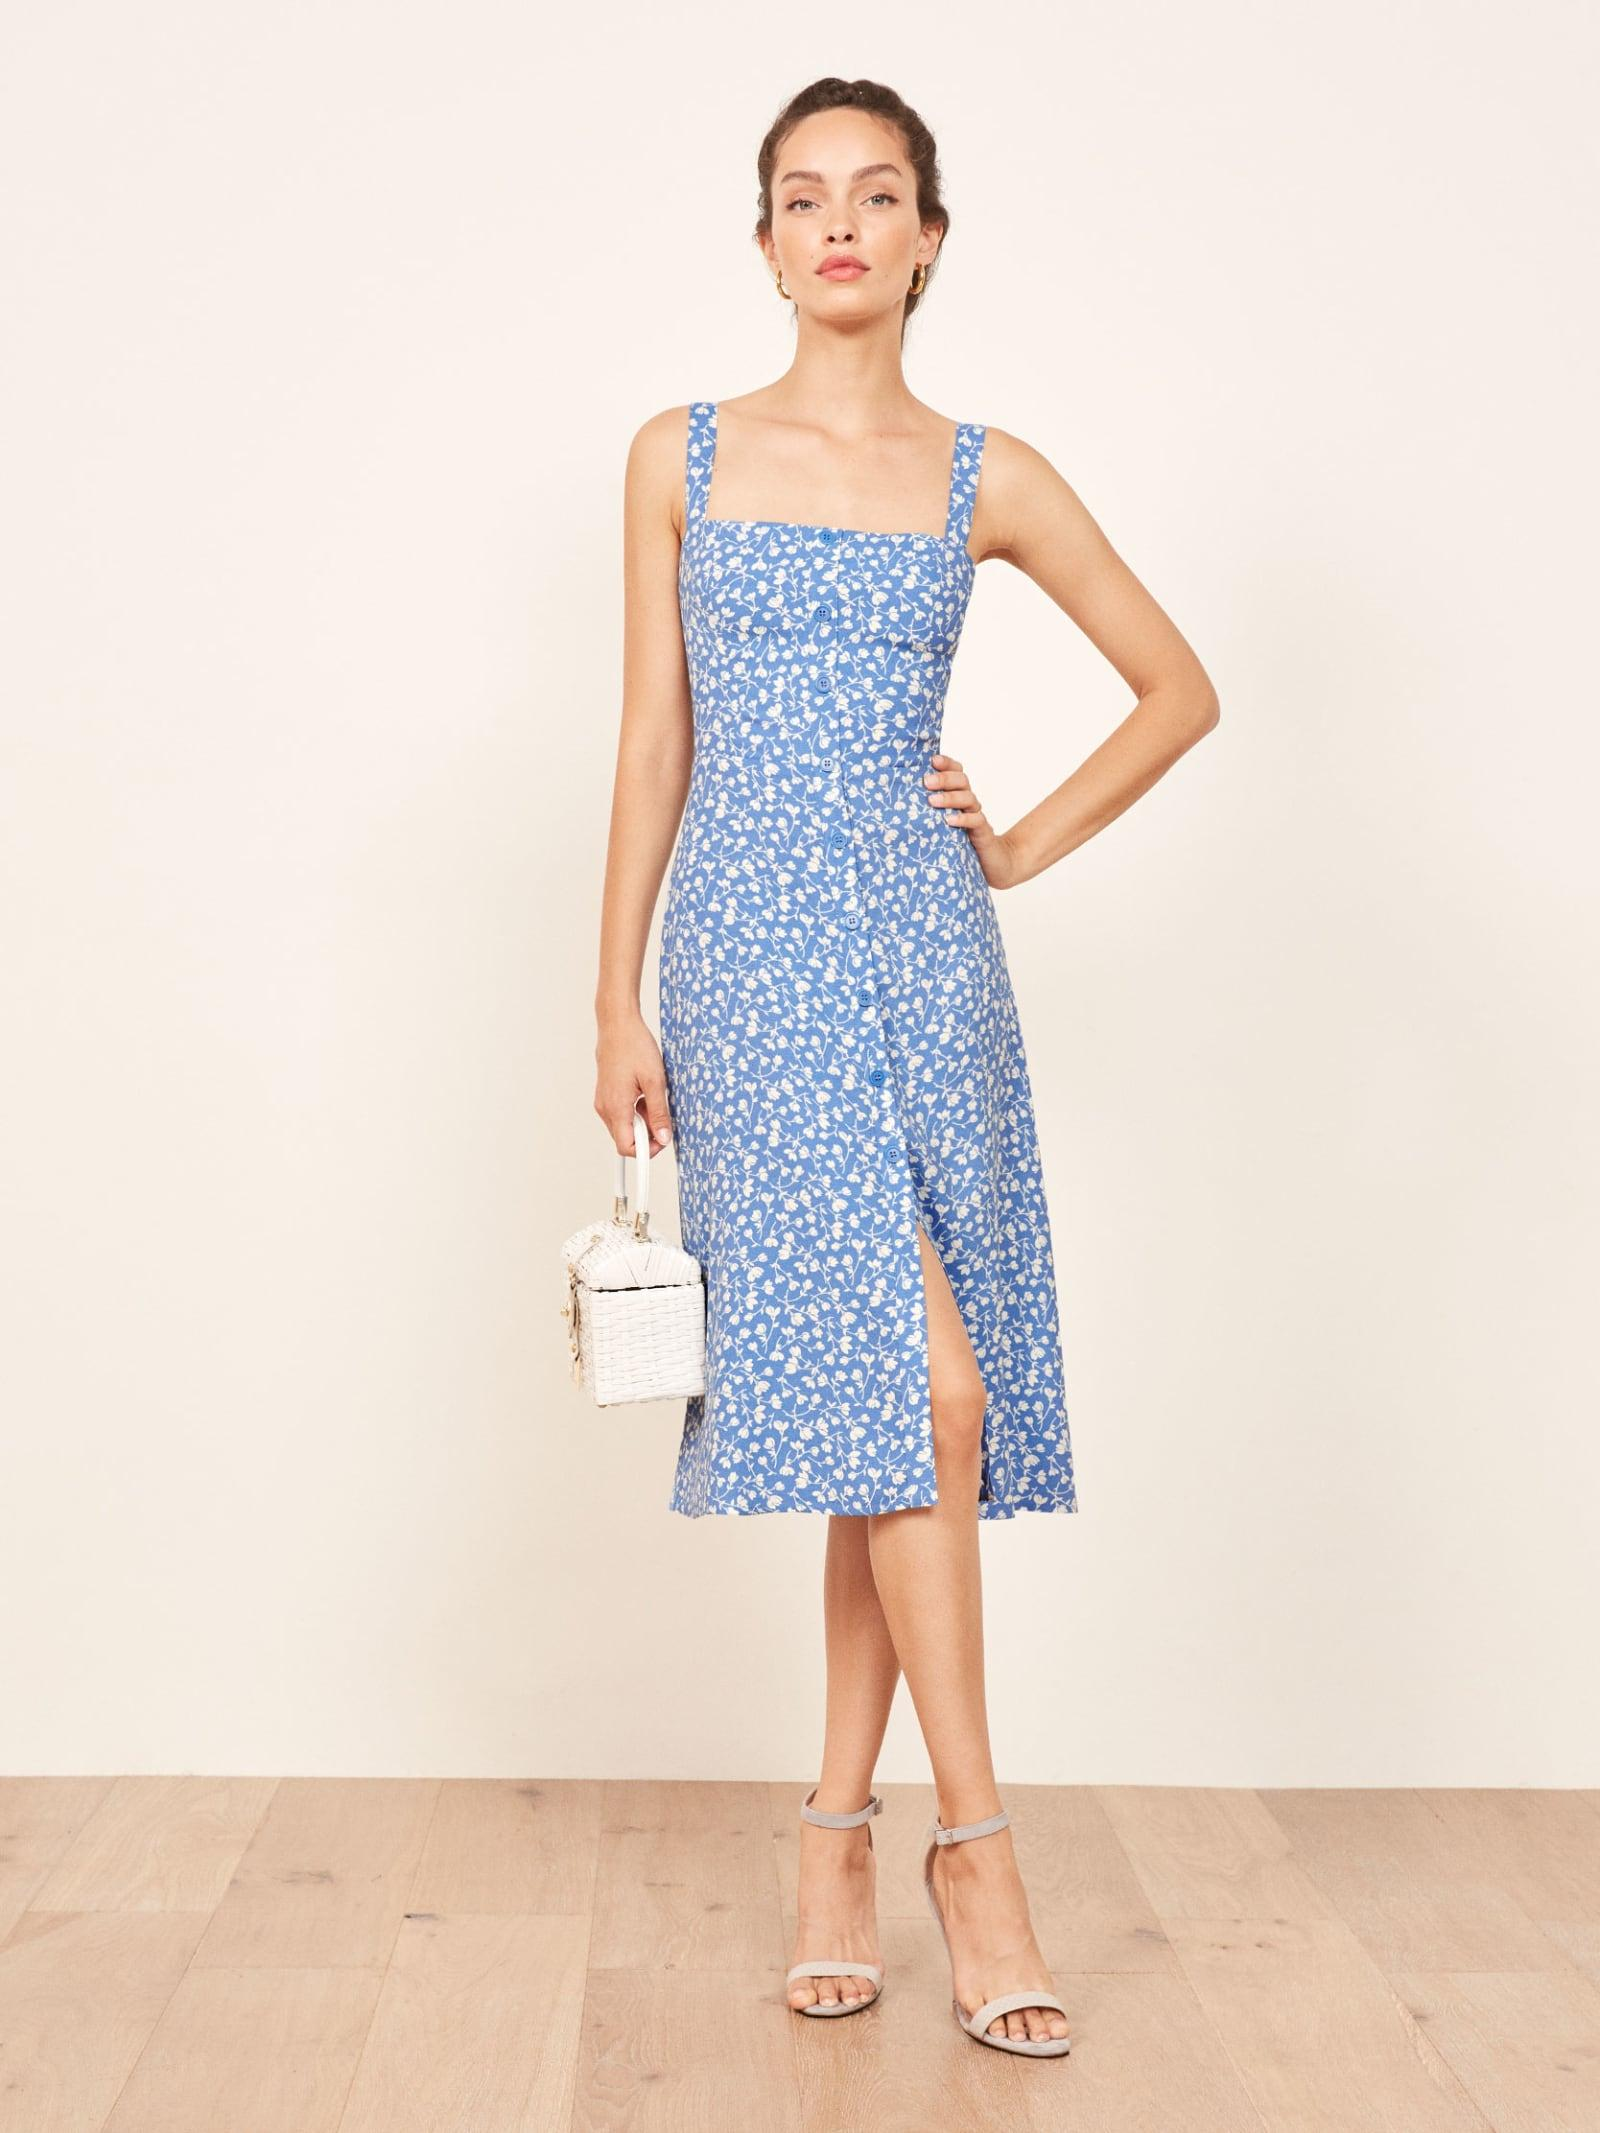 00360d6235c Lyst - Reformation Persimmon Dress in Blue